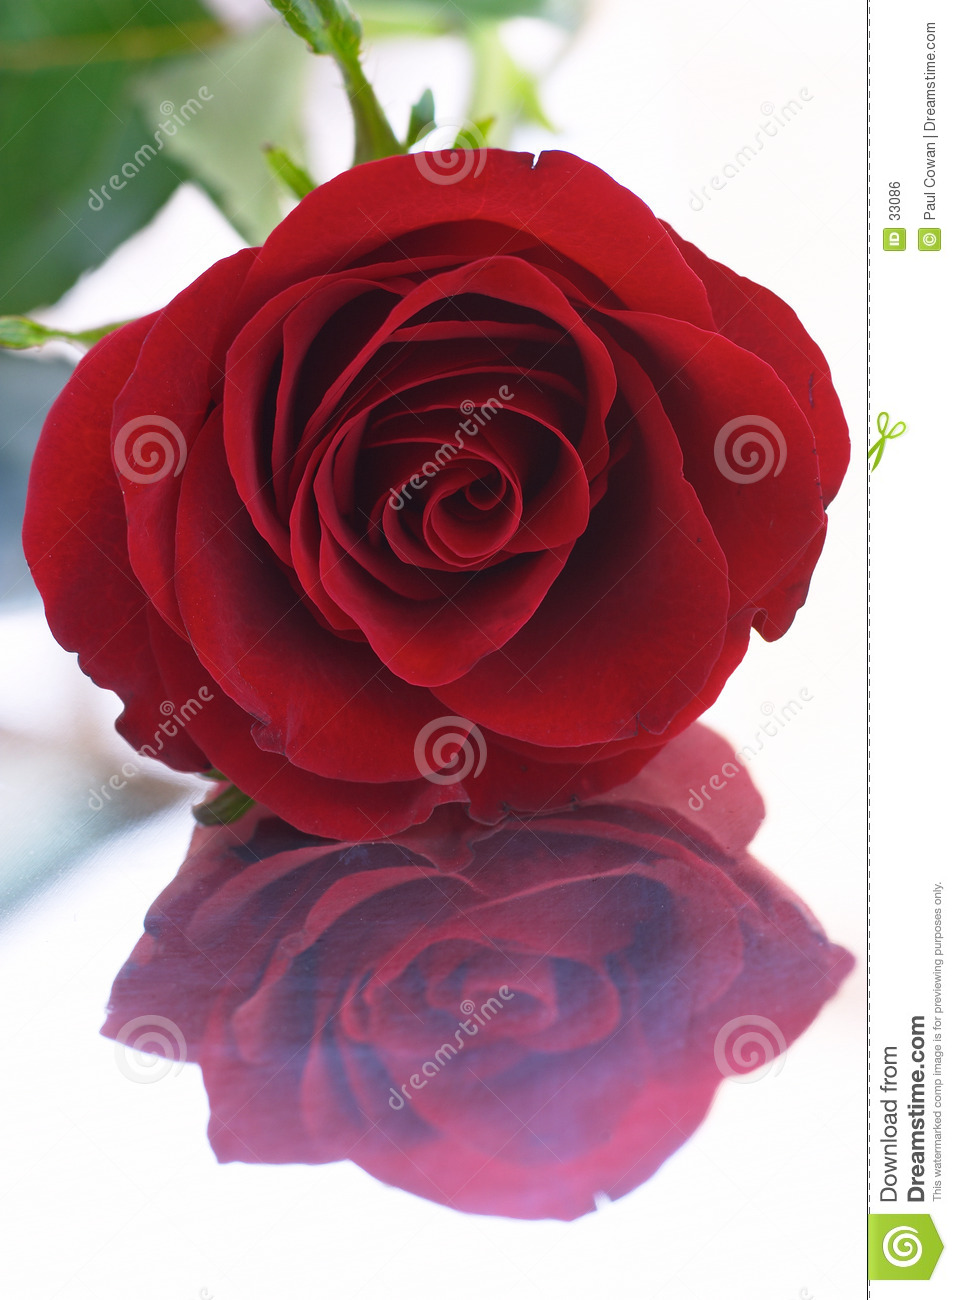 Red rose 8 (reflection)